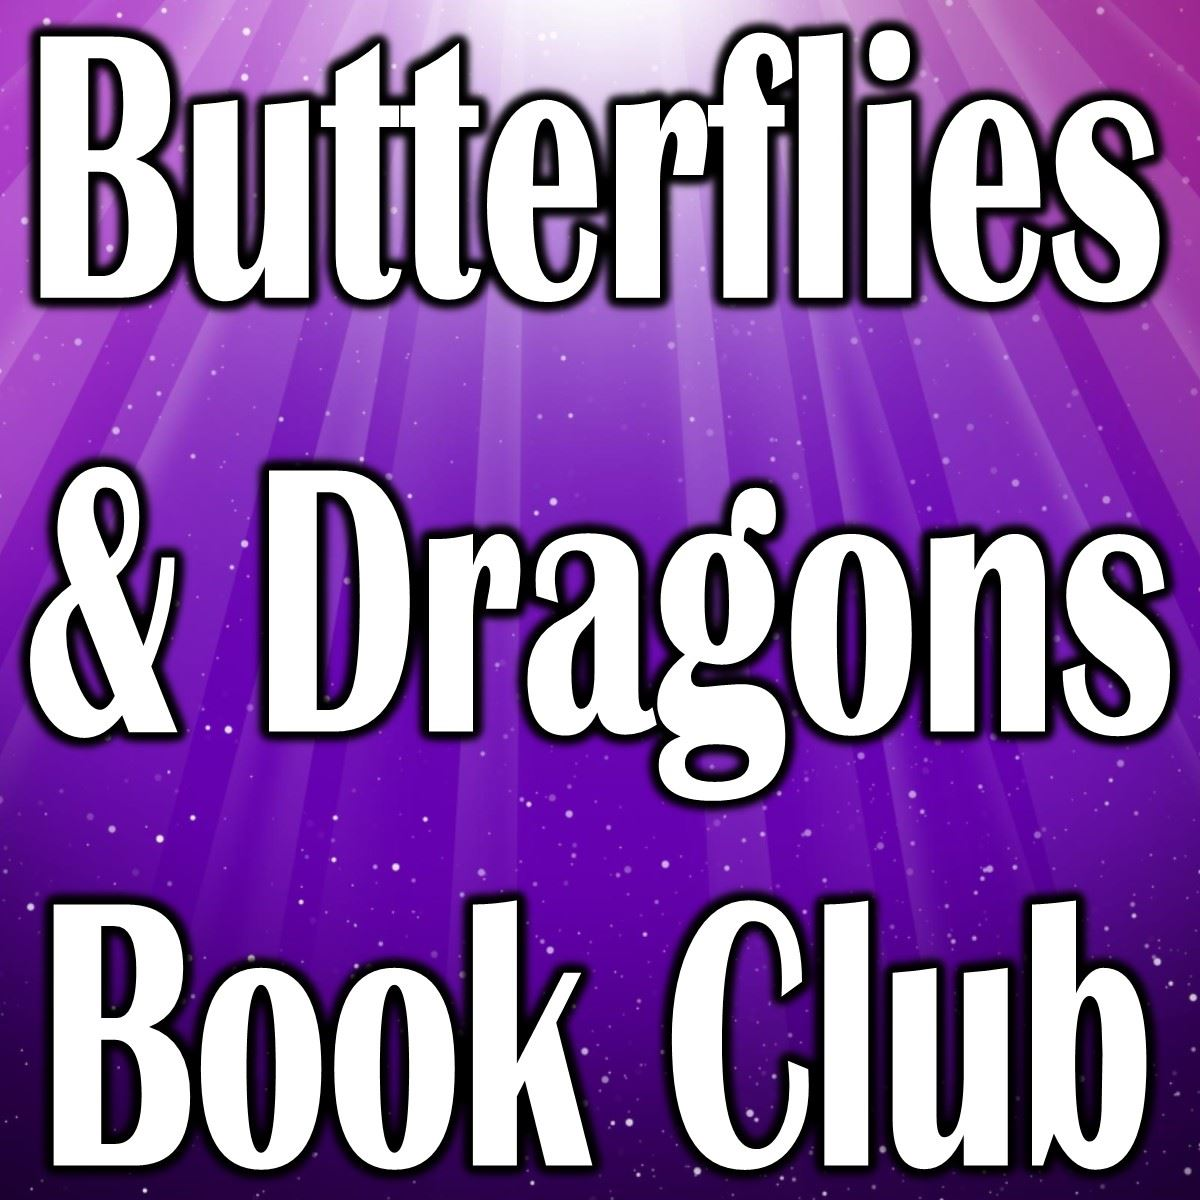 Butterflies & Dragons Book Club